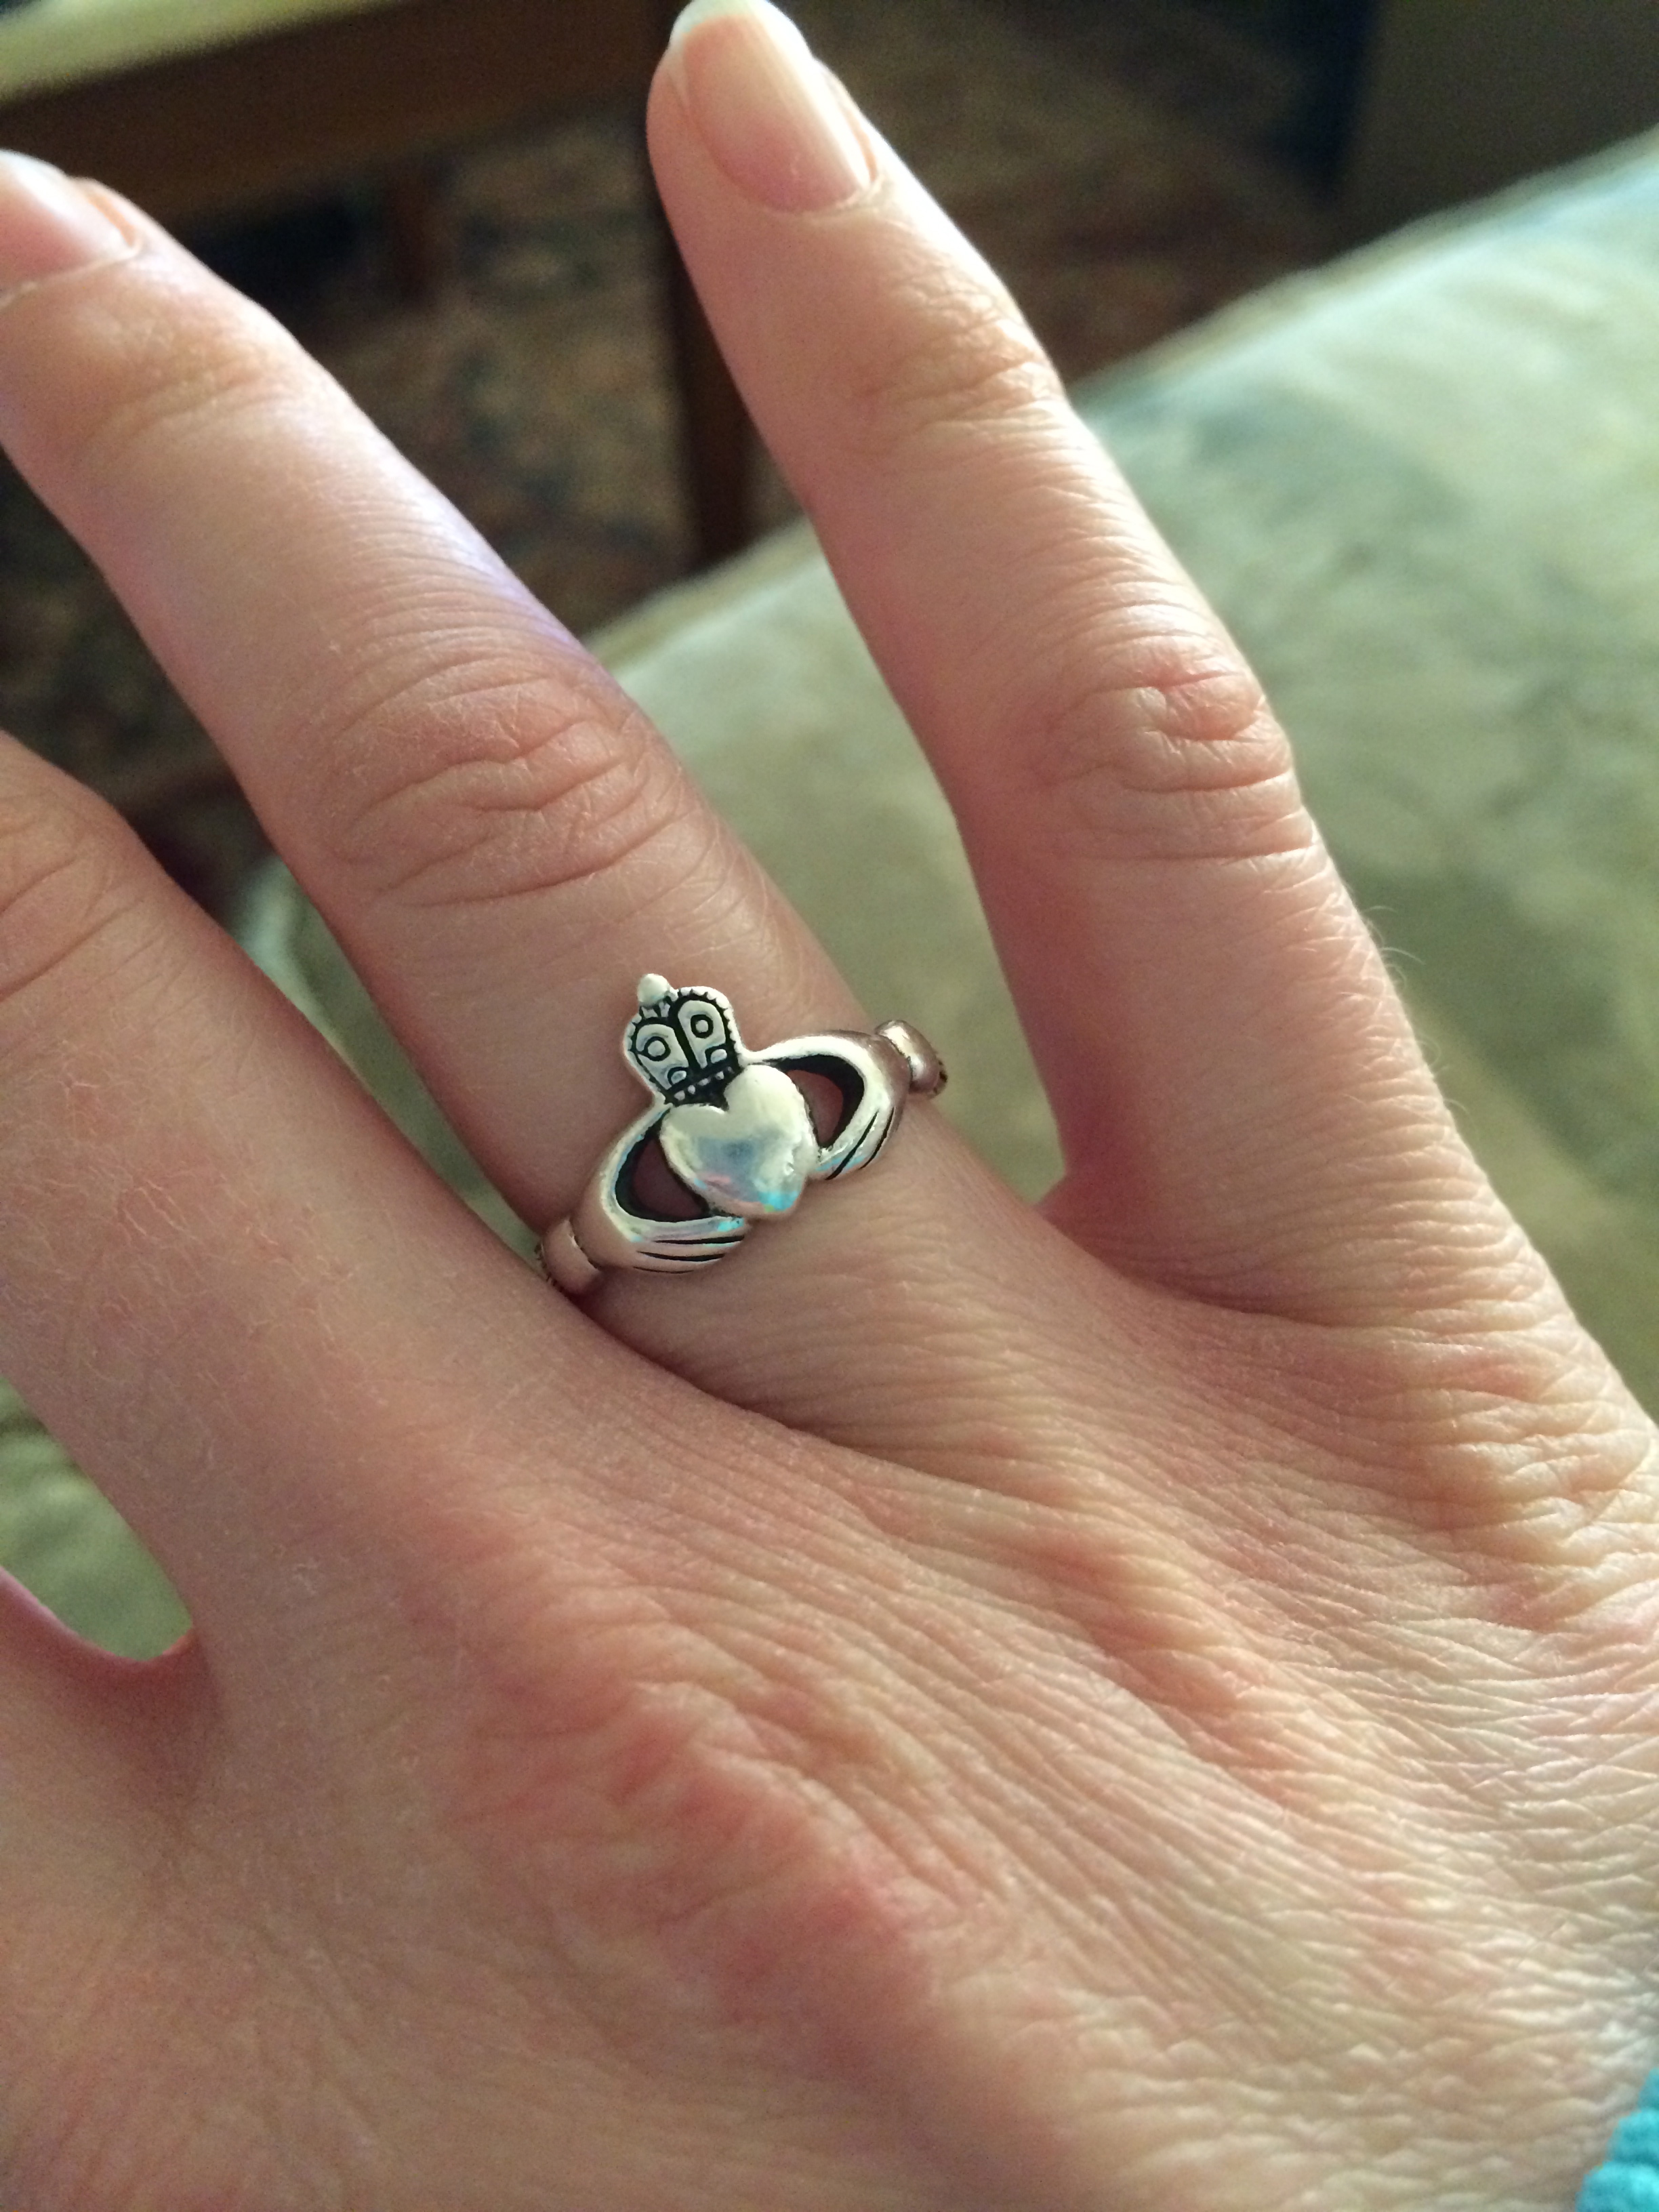 My Claddagh ring, bought in Dublin in March 2010.